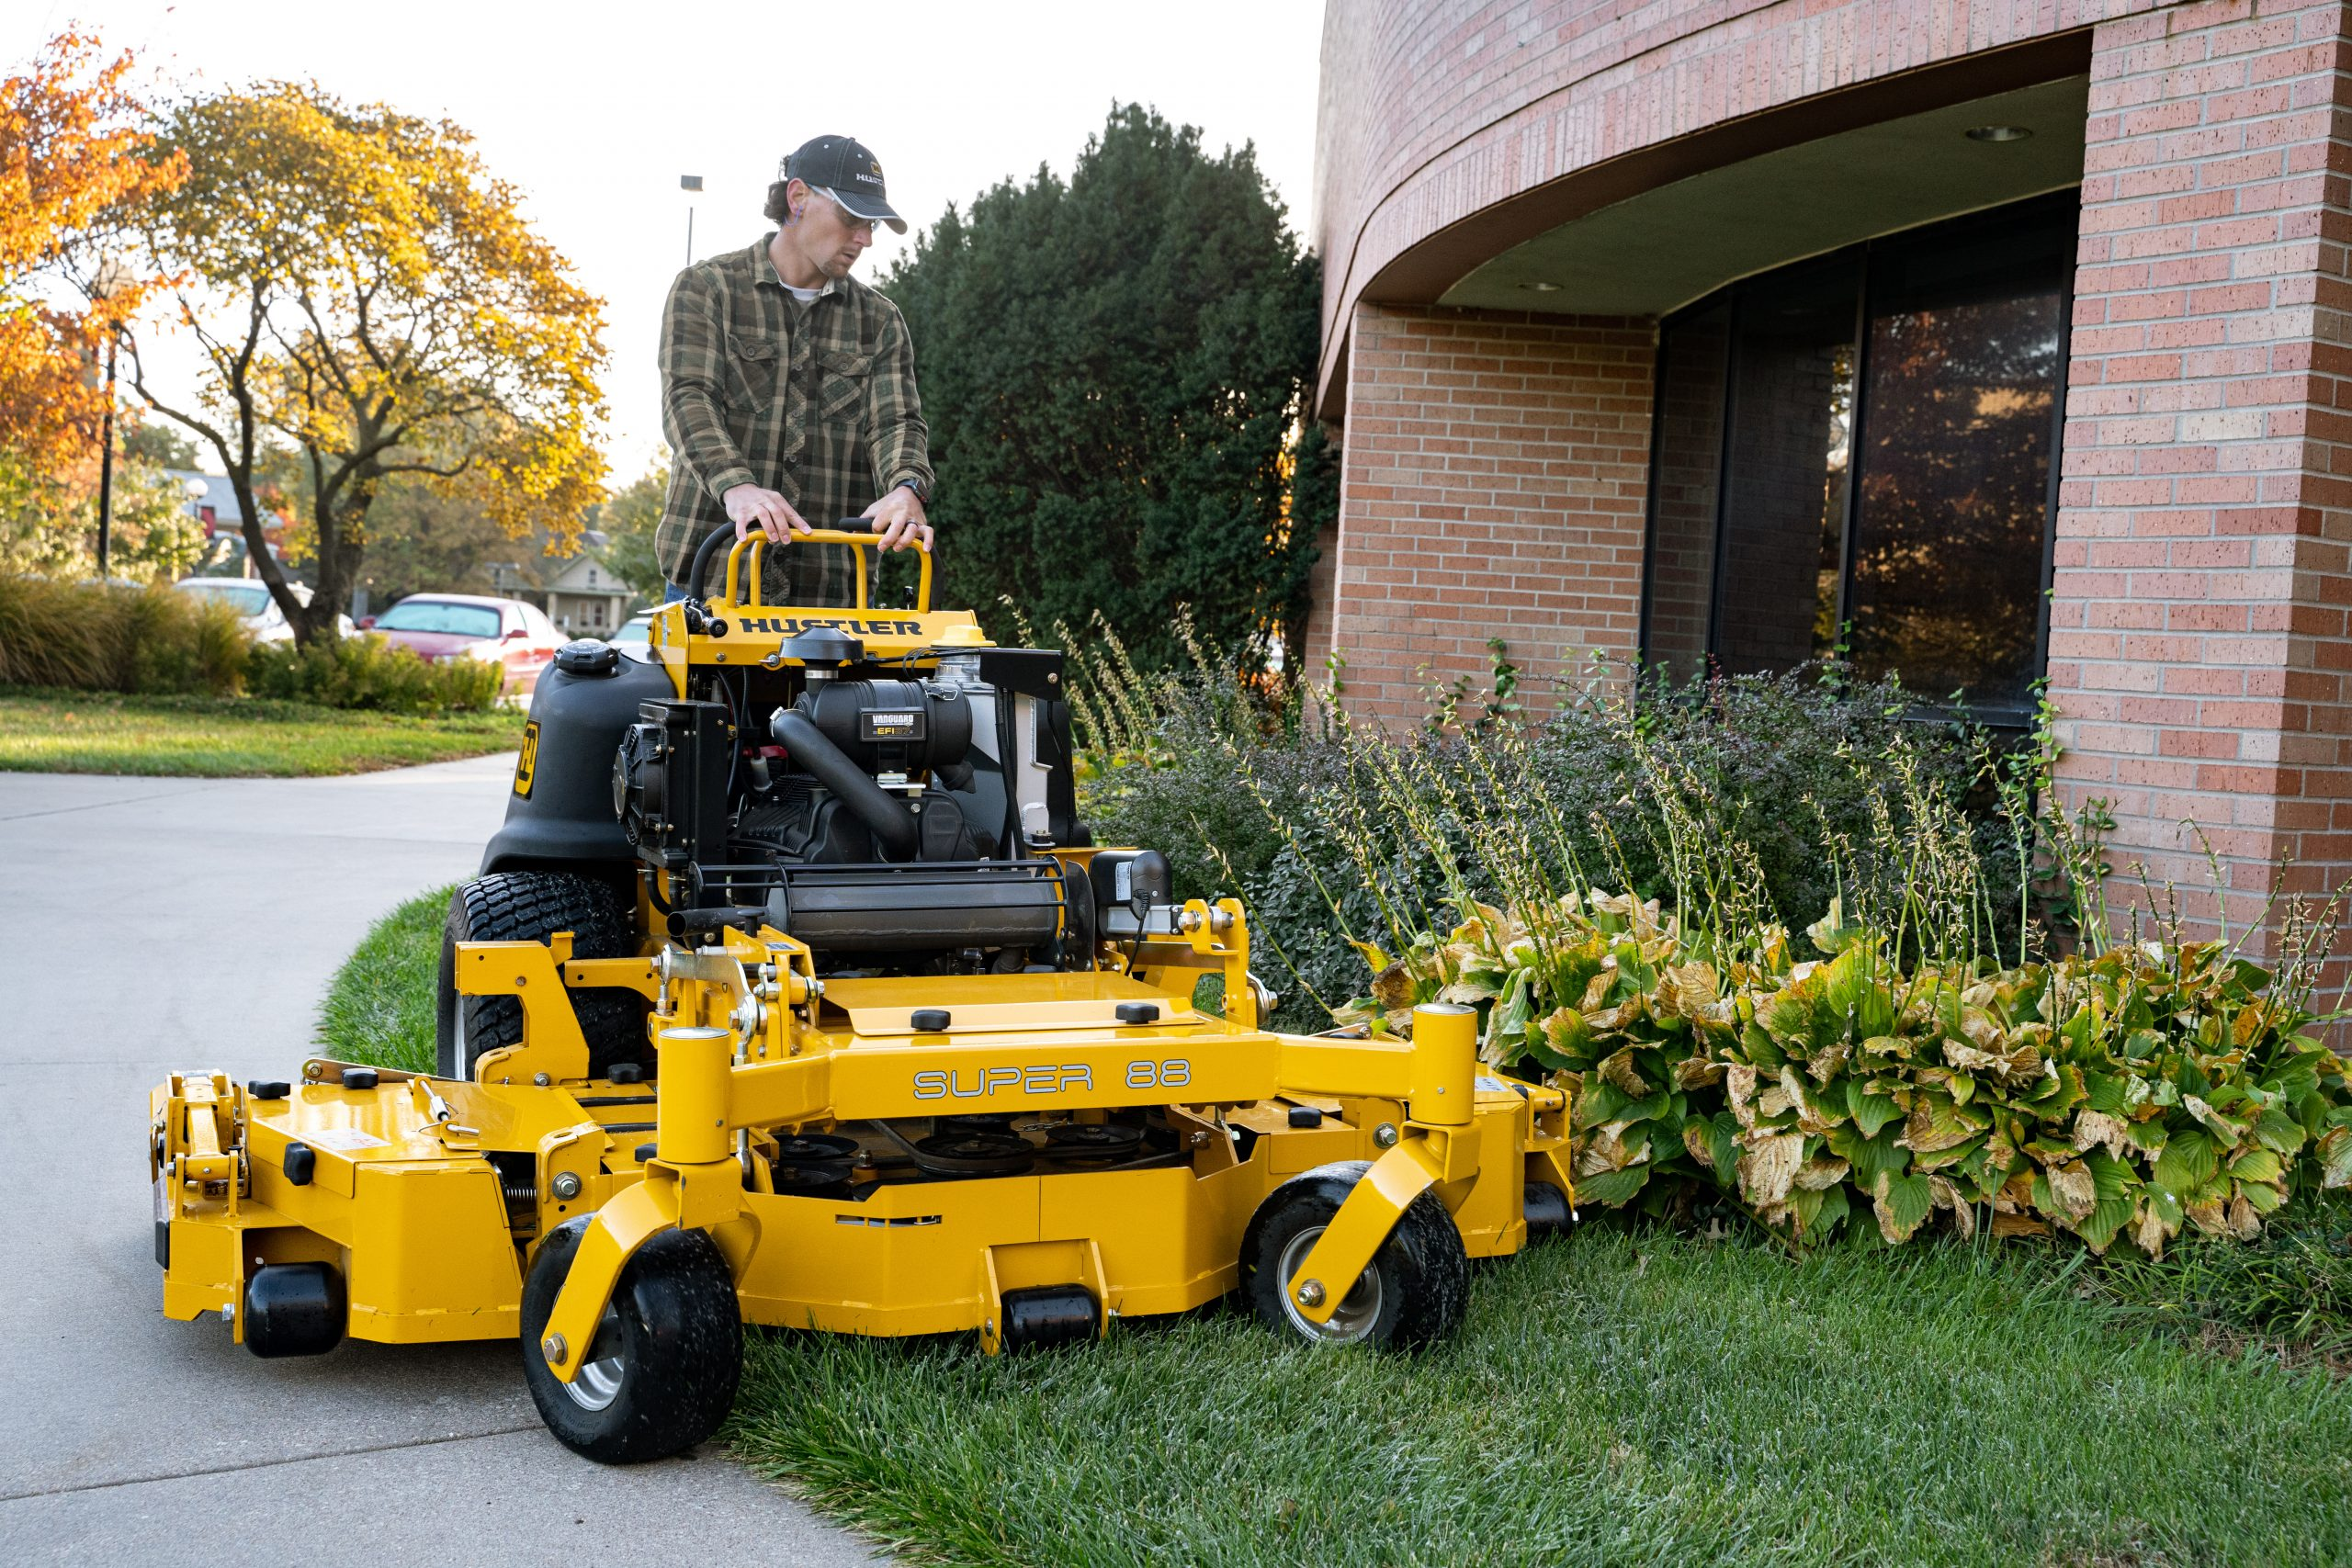 New stand-on mower receives award and acceptance in marketplace